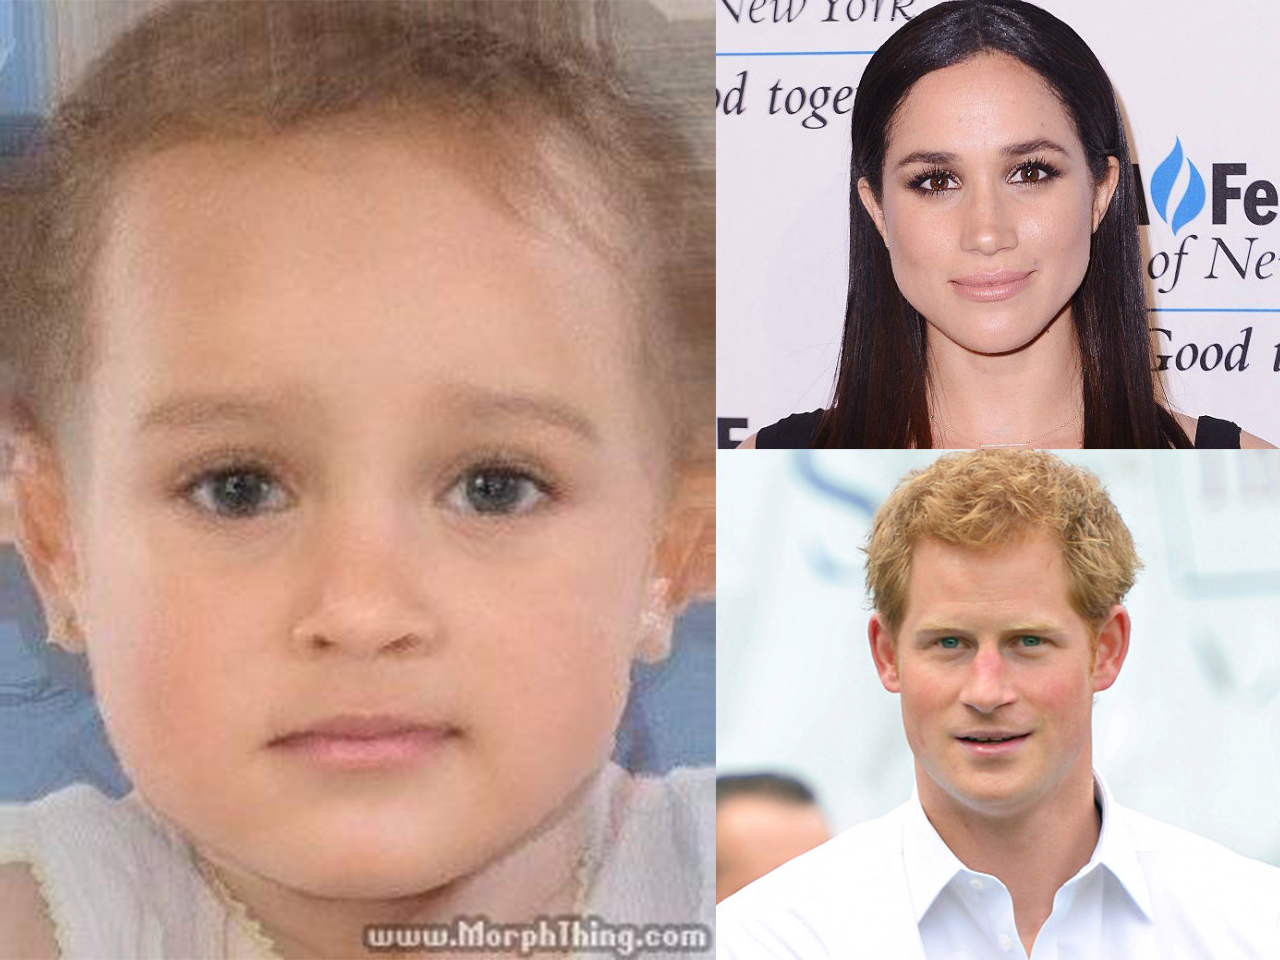 Image with Prince Harry and Meghan MArkle's faces morphed together to show their future baby